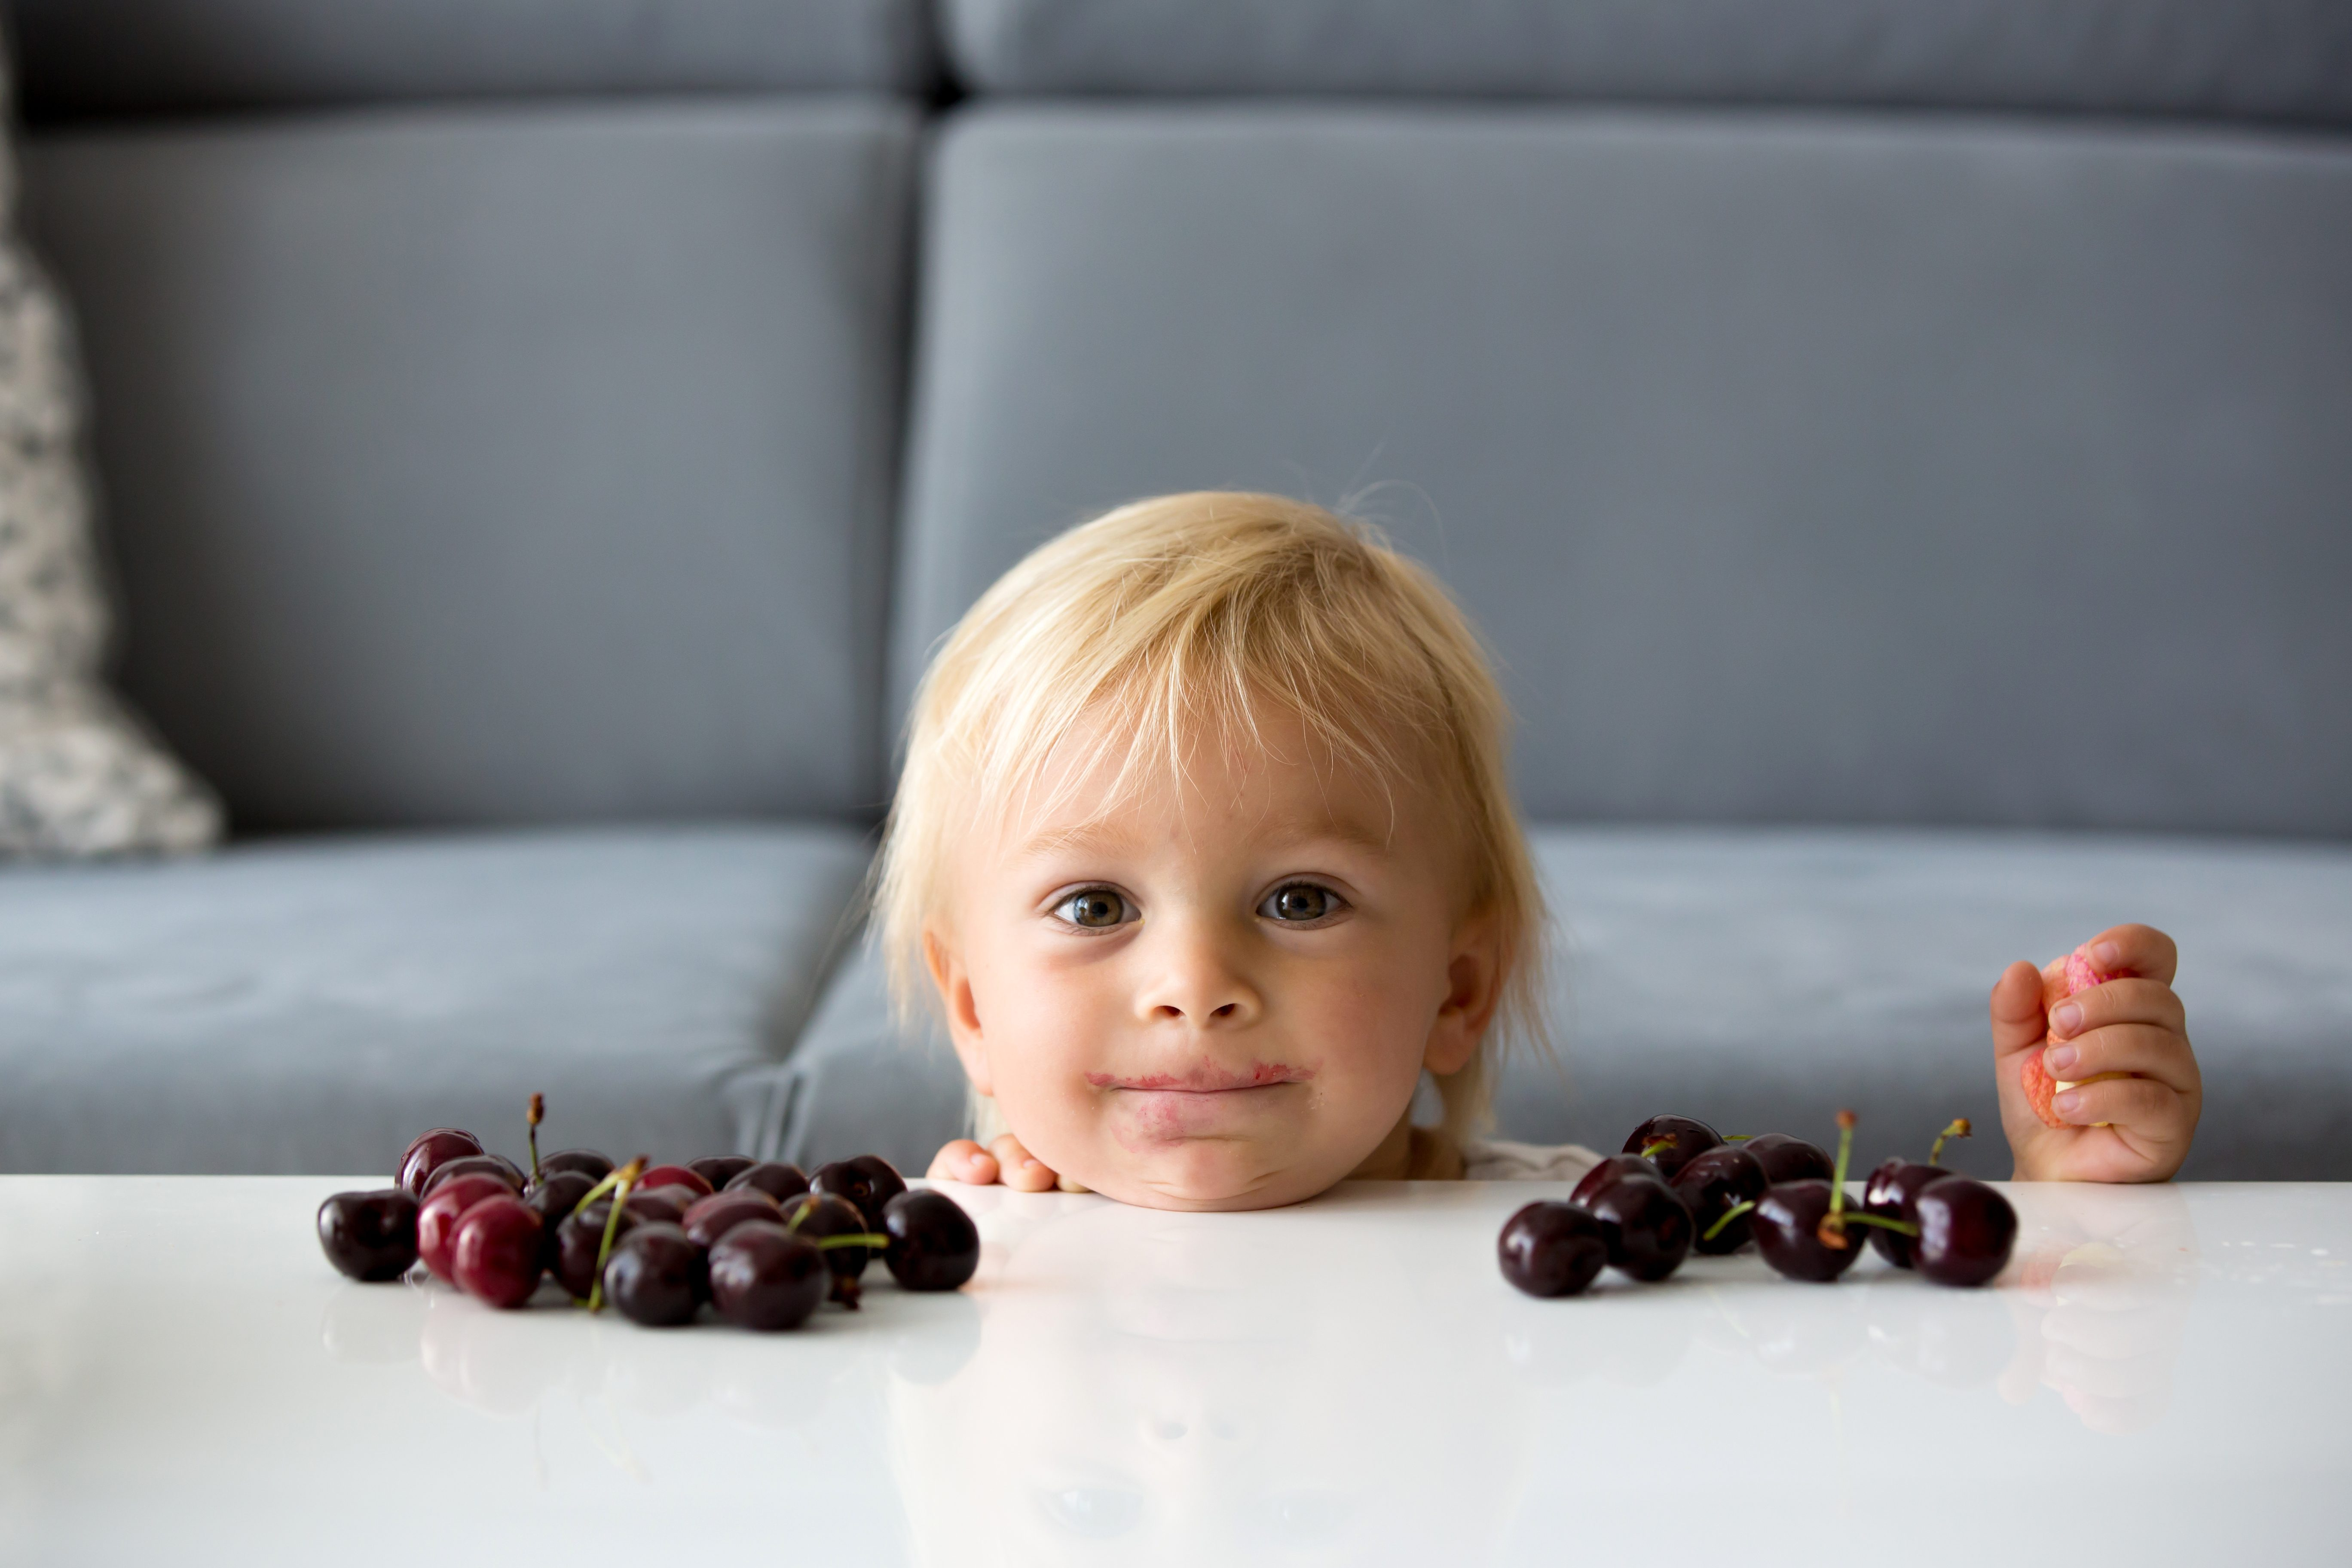 Sweet toddle boy, eating cherries, hiding behind a table, mischief look on his face